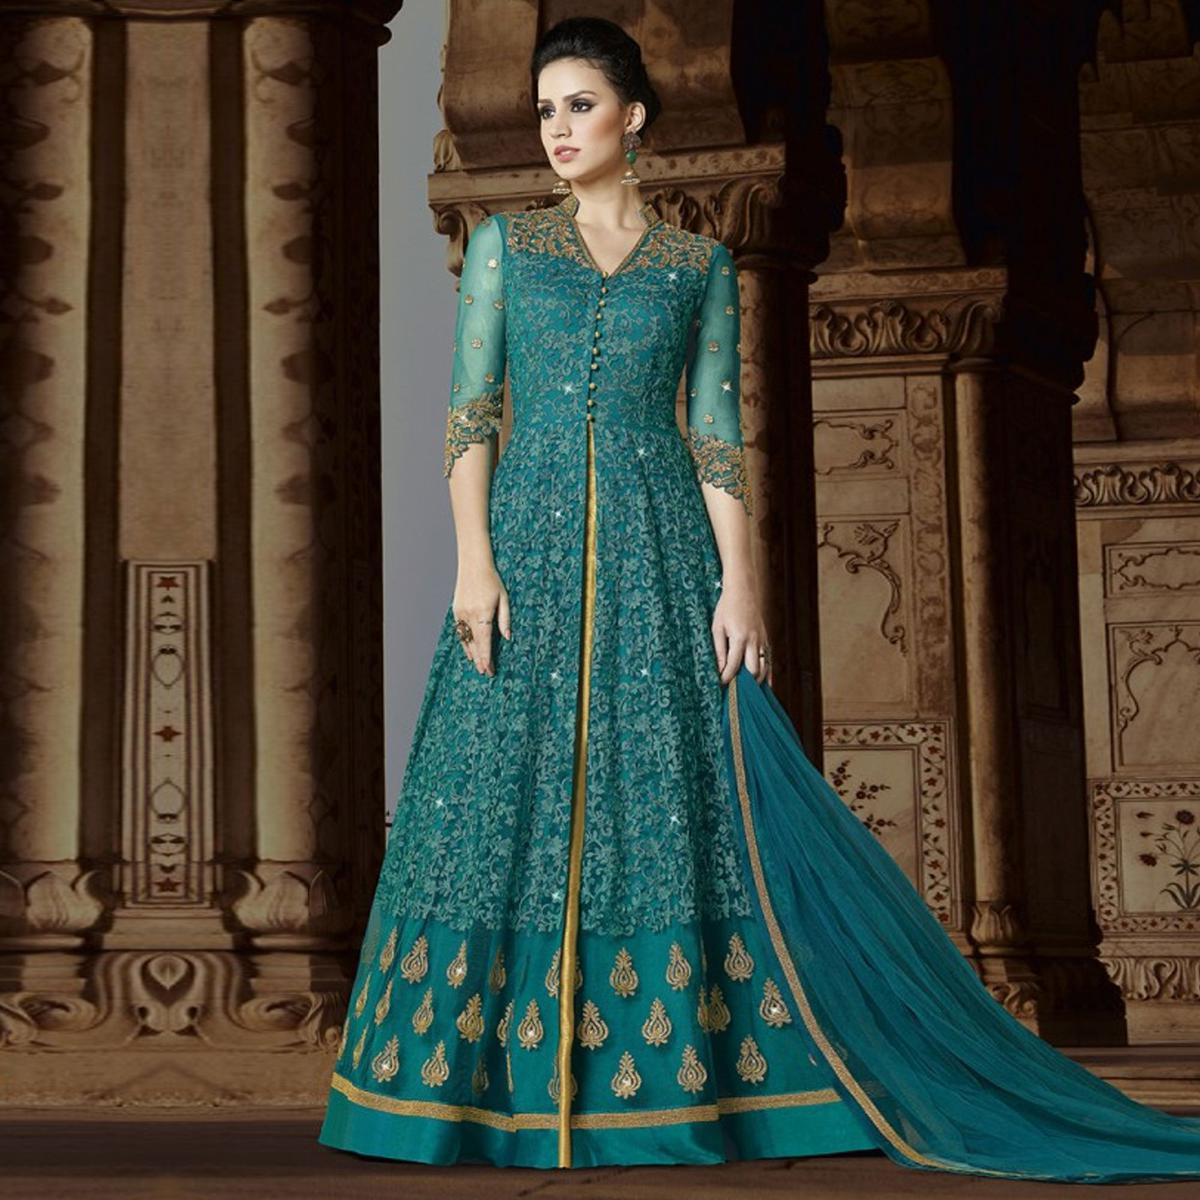 Stunning Turquoise Green Colored Embroidered Partywear Abaya Style Netted Lehenga / Anarkali Suit